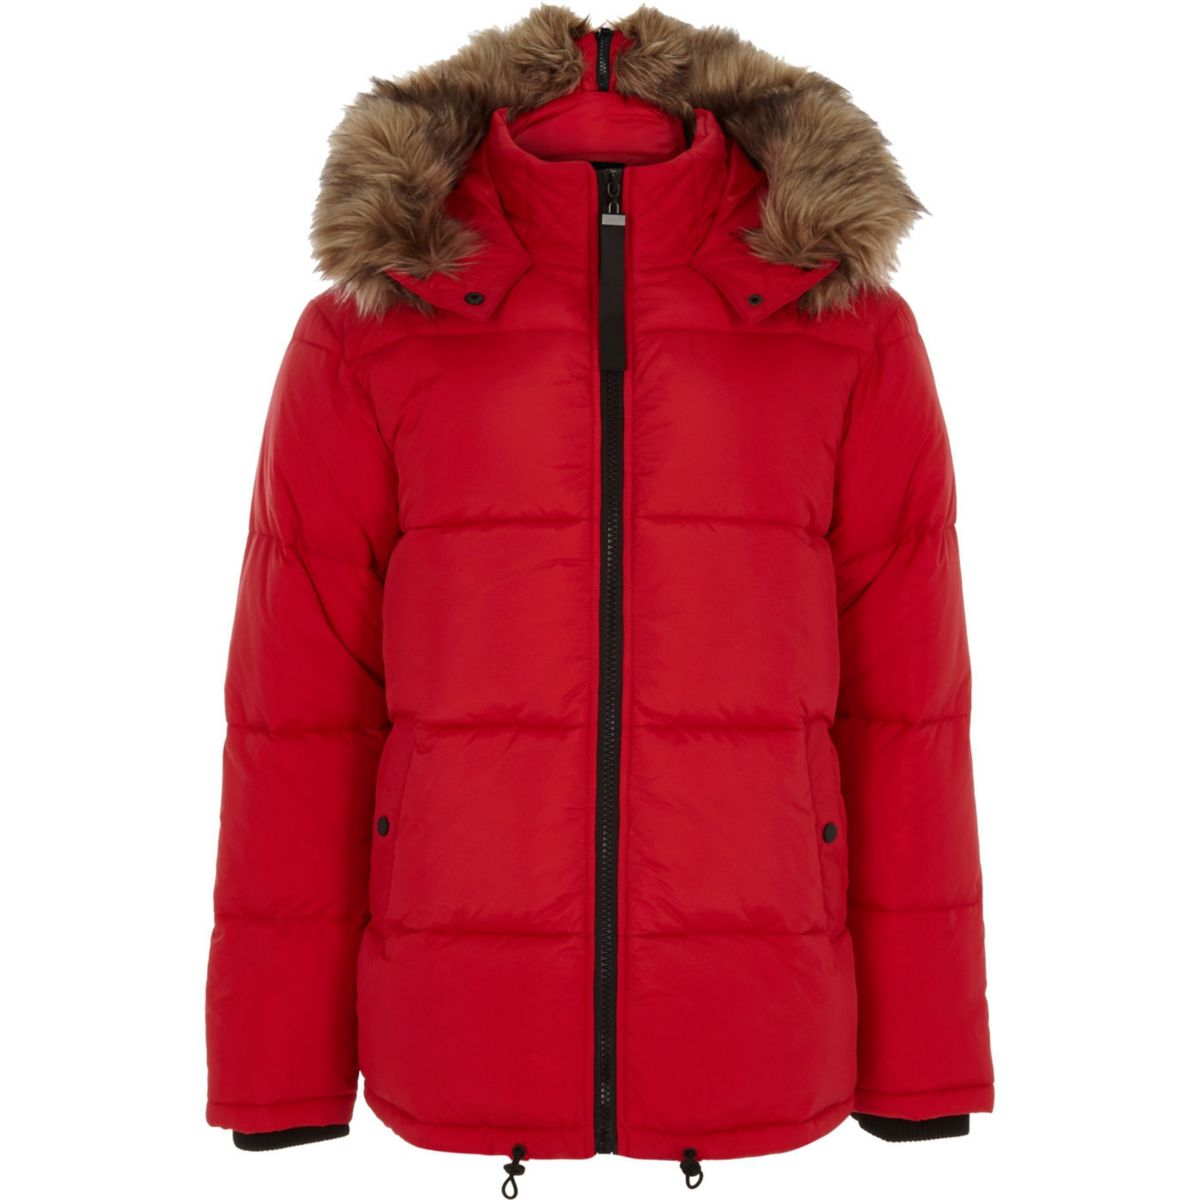 Big and Tall red hooded puffer jacket